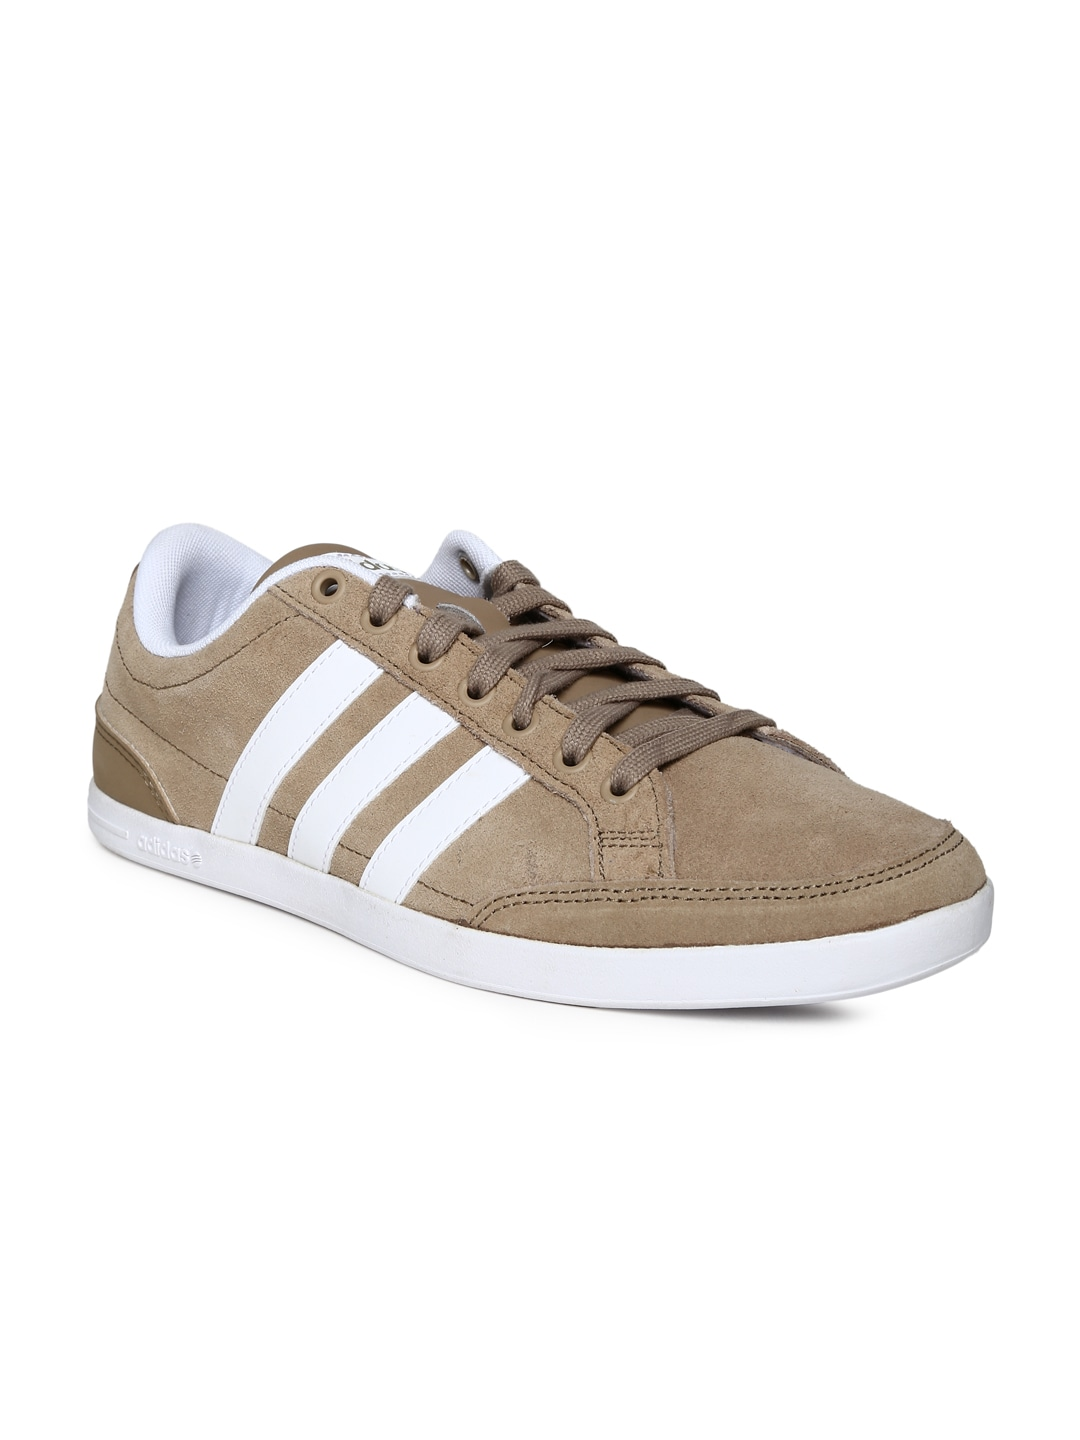 Adidas neo f97702 Men Beige Caflaire Suede Casual Shoes- Price in India 04ee532c6